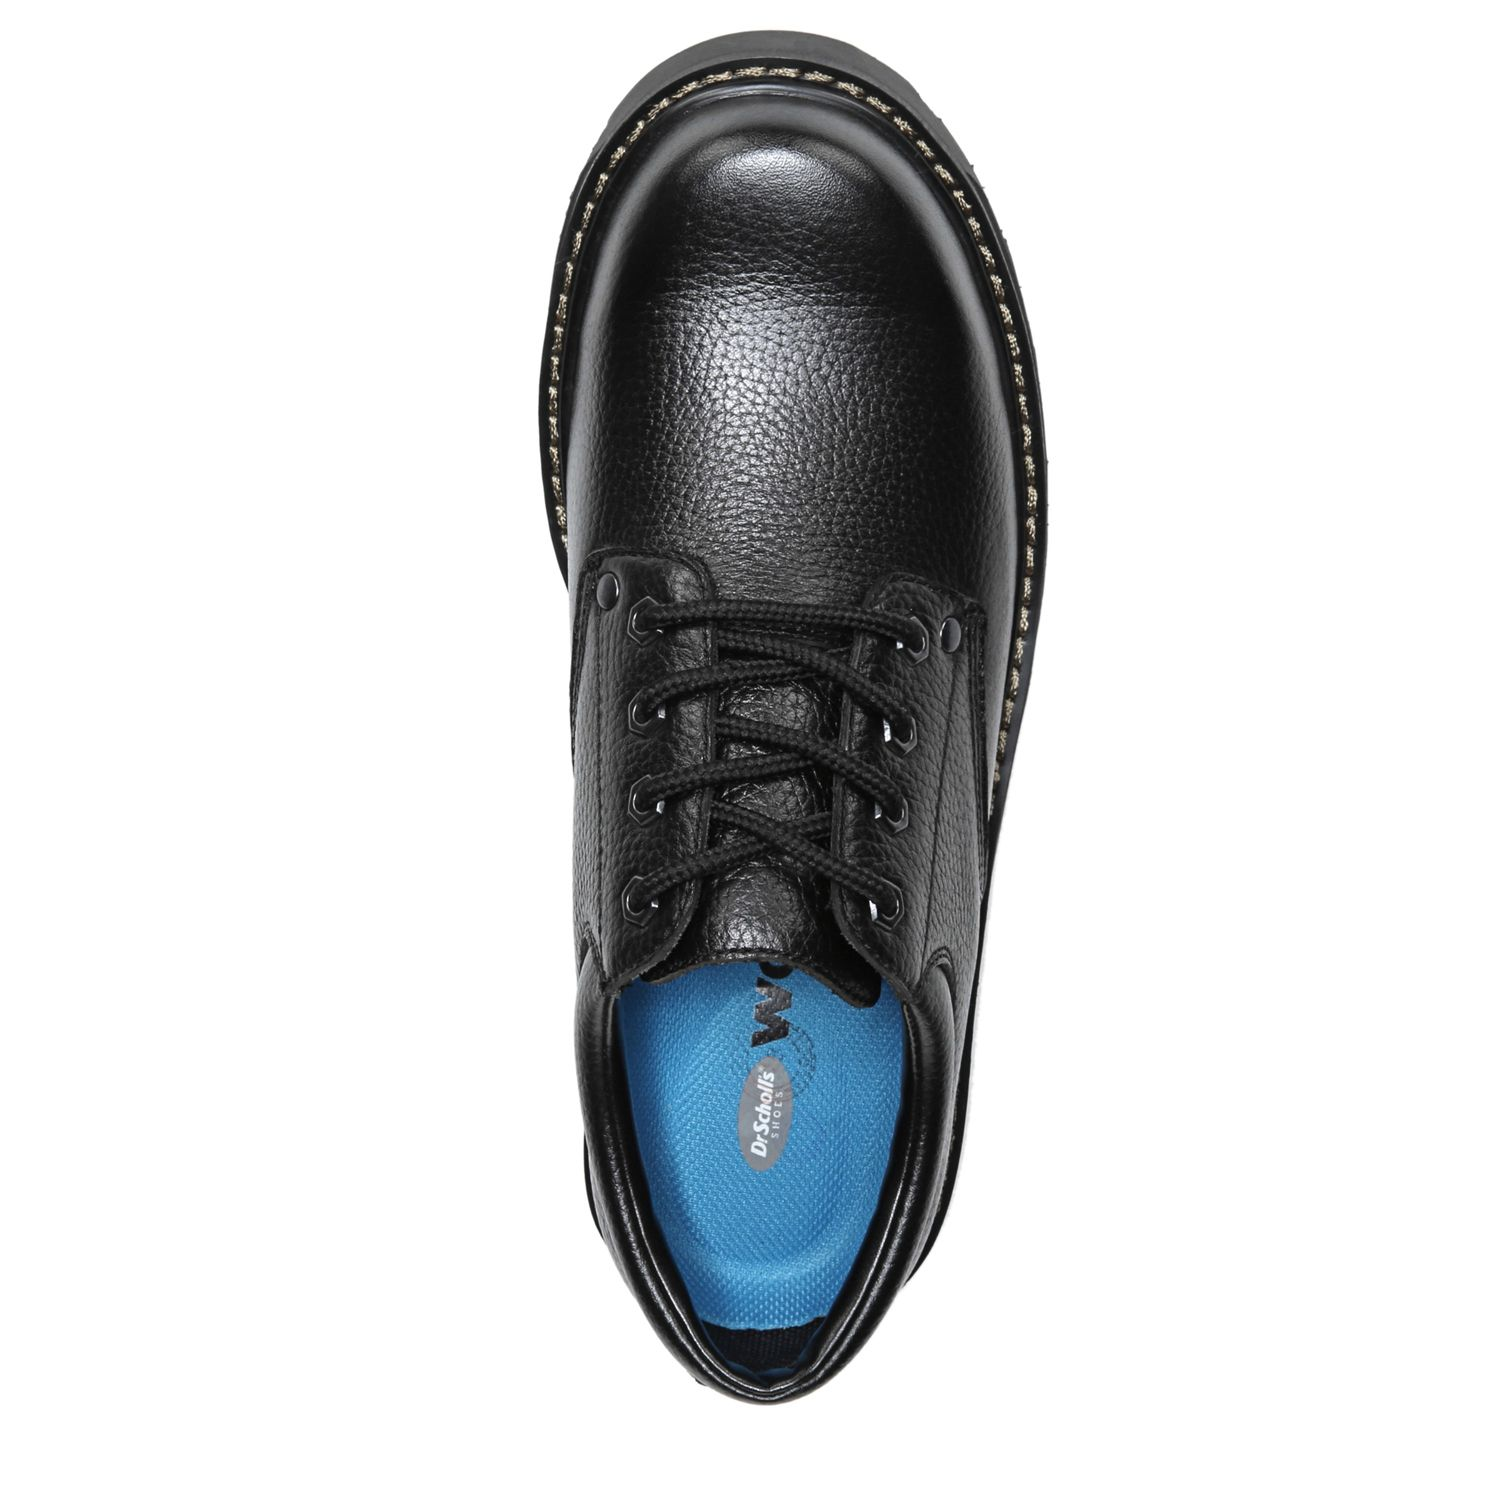 3eea4cf904ffa Mens Dr. Scholl's Shoes | Kohl's